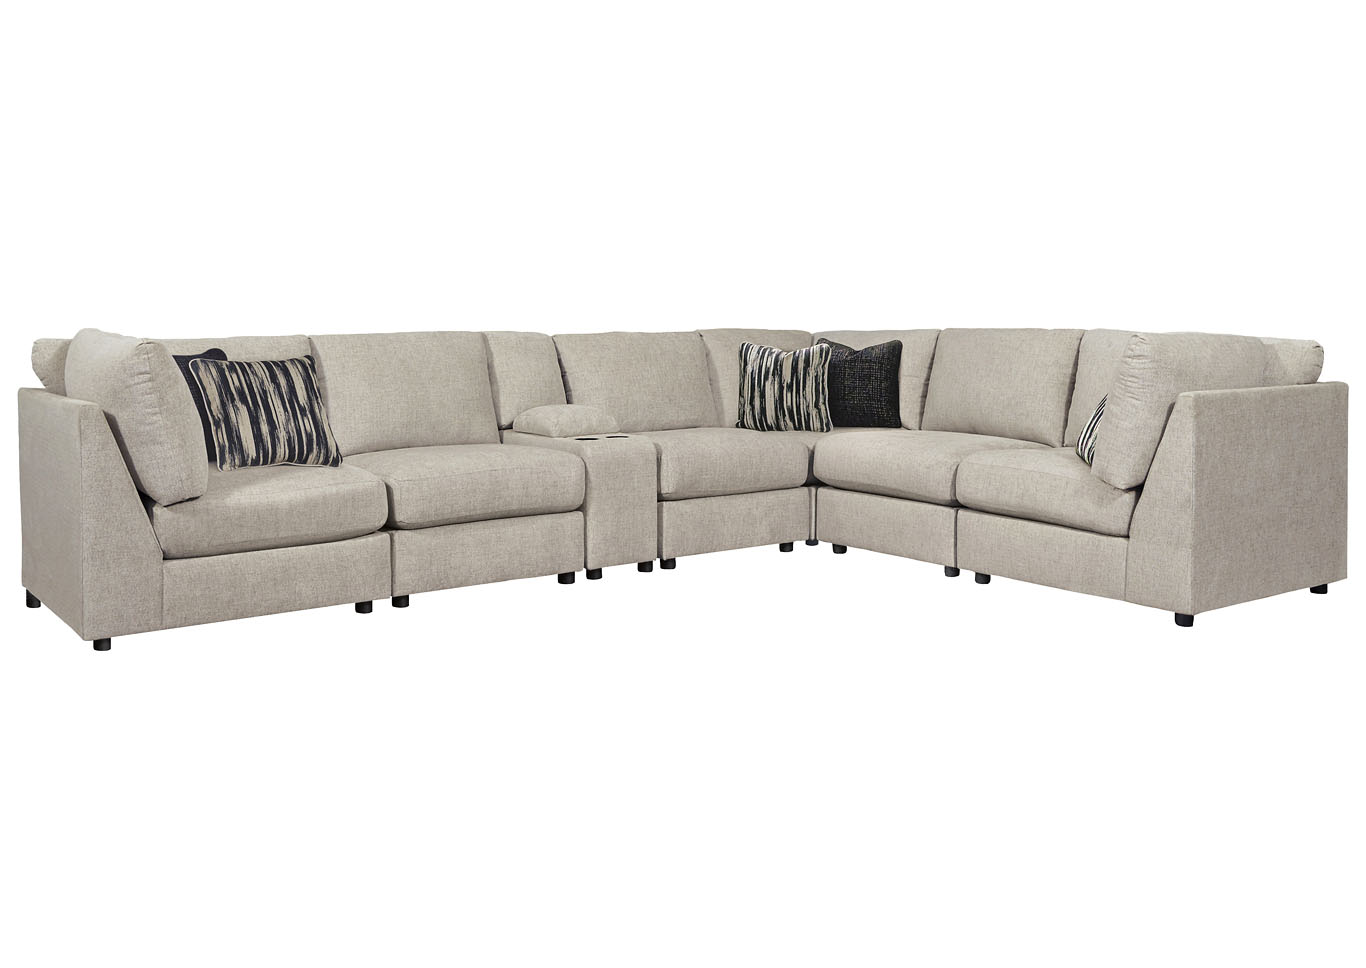 Kellway Bisque Right Arm Facing Sectional w/Console,Signature Design By Ashley